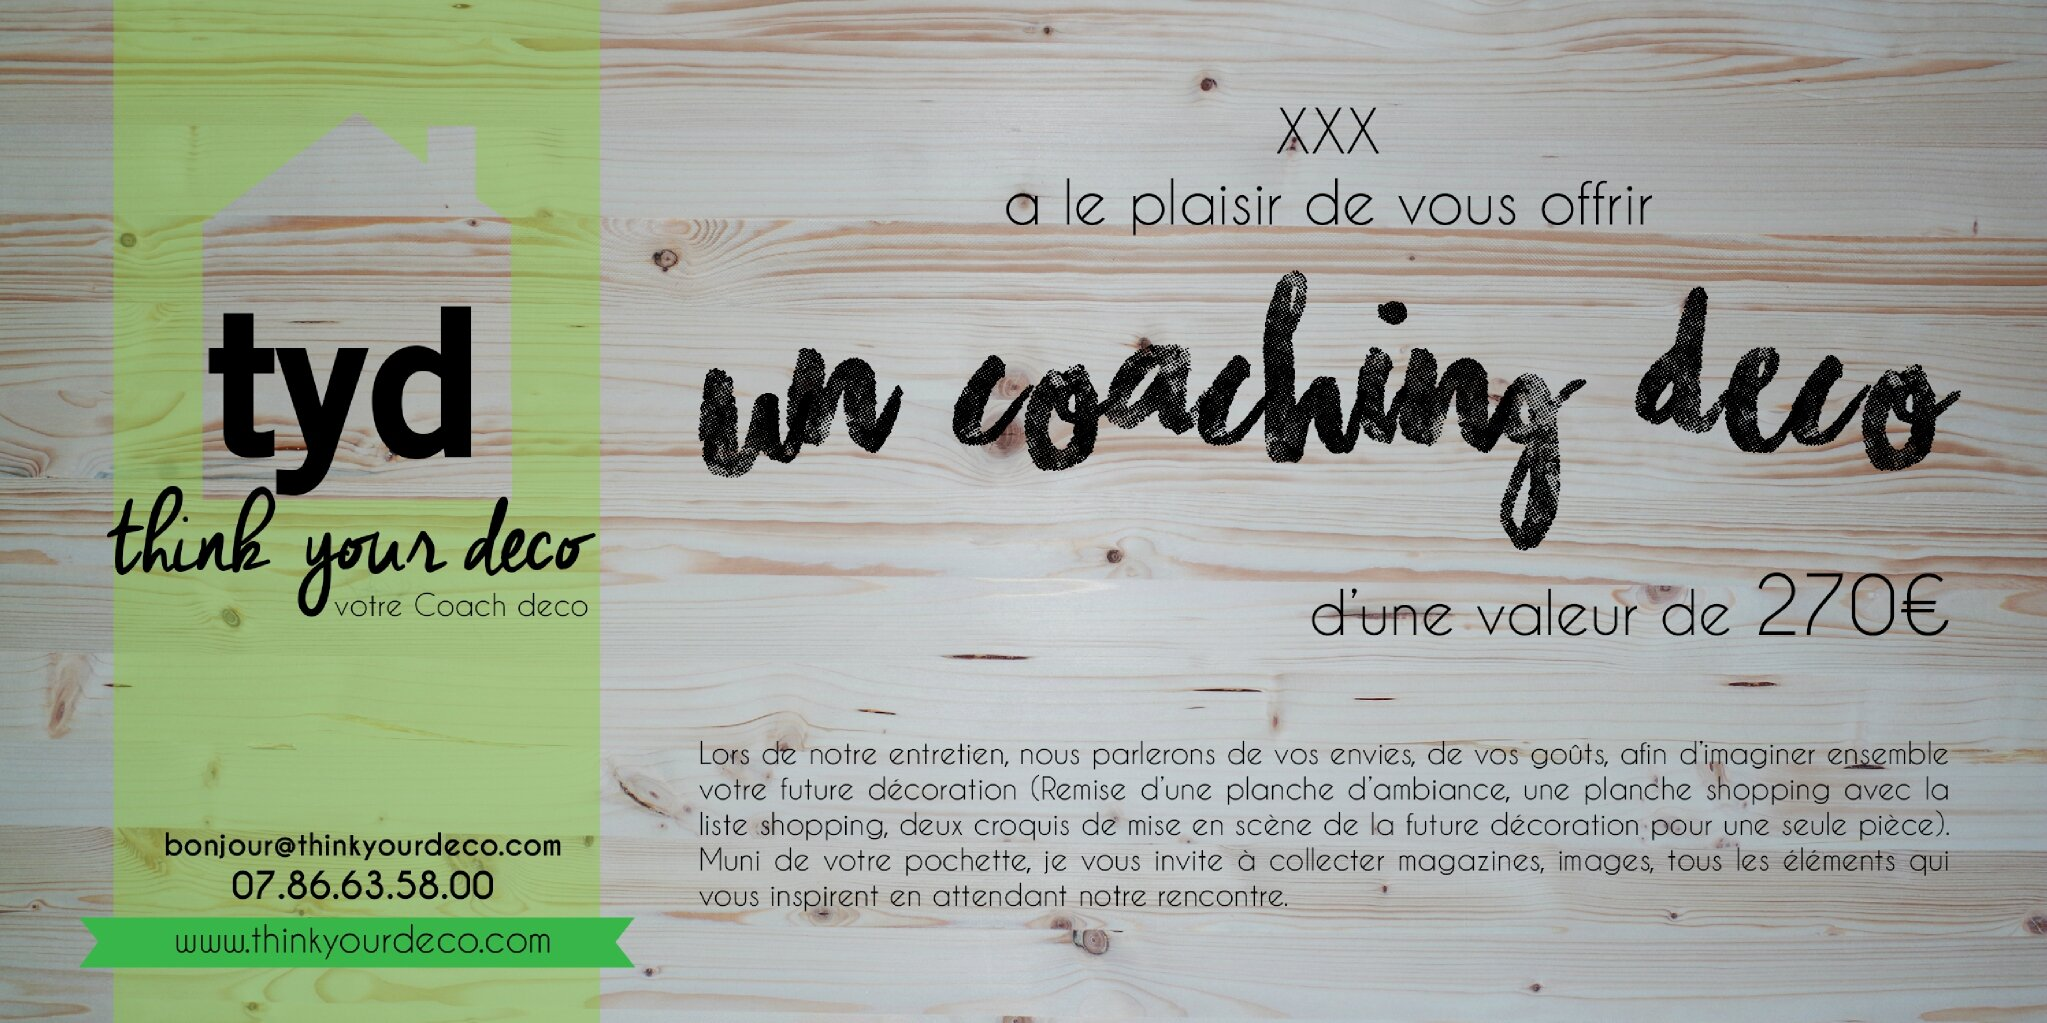 un coaching d co pour no l tyd think your deco coach d co nord lille p v le. Black Bedroom Furniture Sets. Home Design Ideas